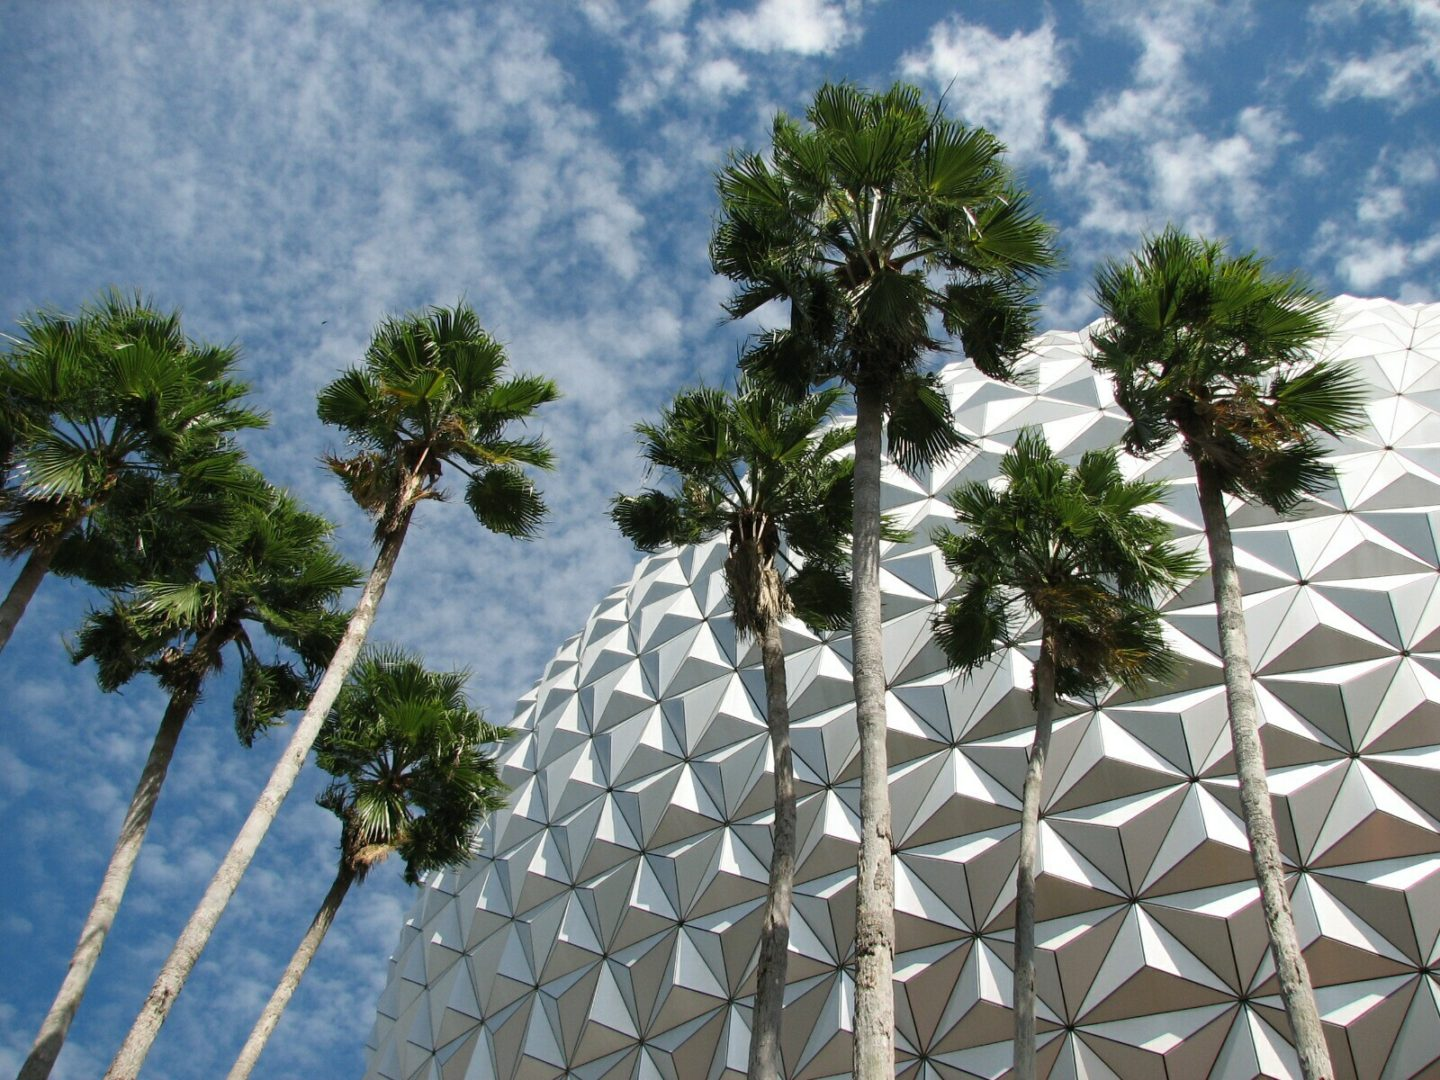 Free Scavenger Hunt This Sunday in Epcot